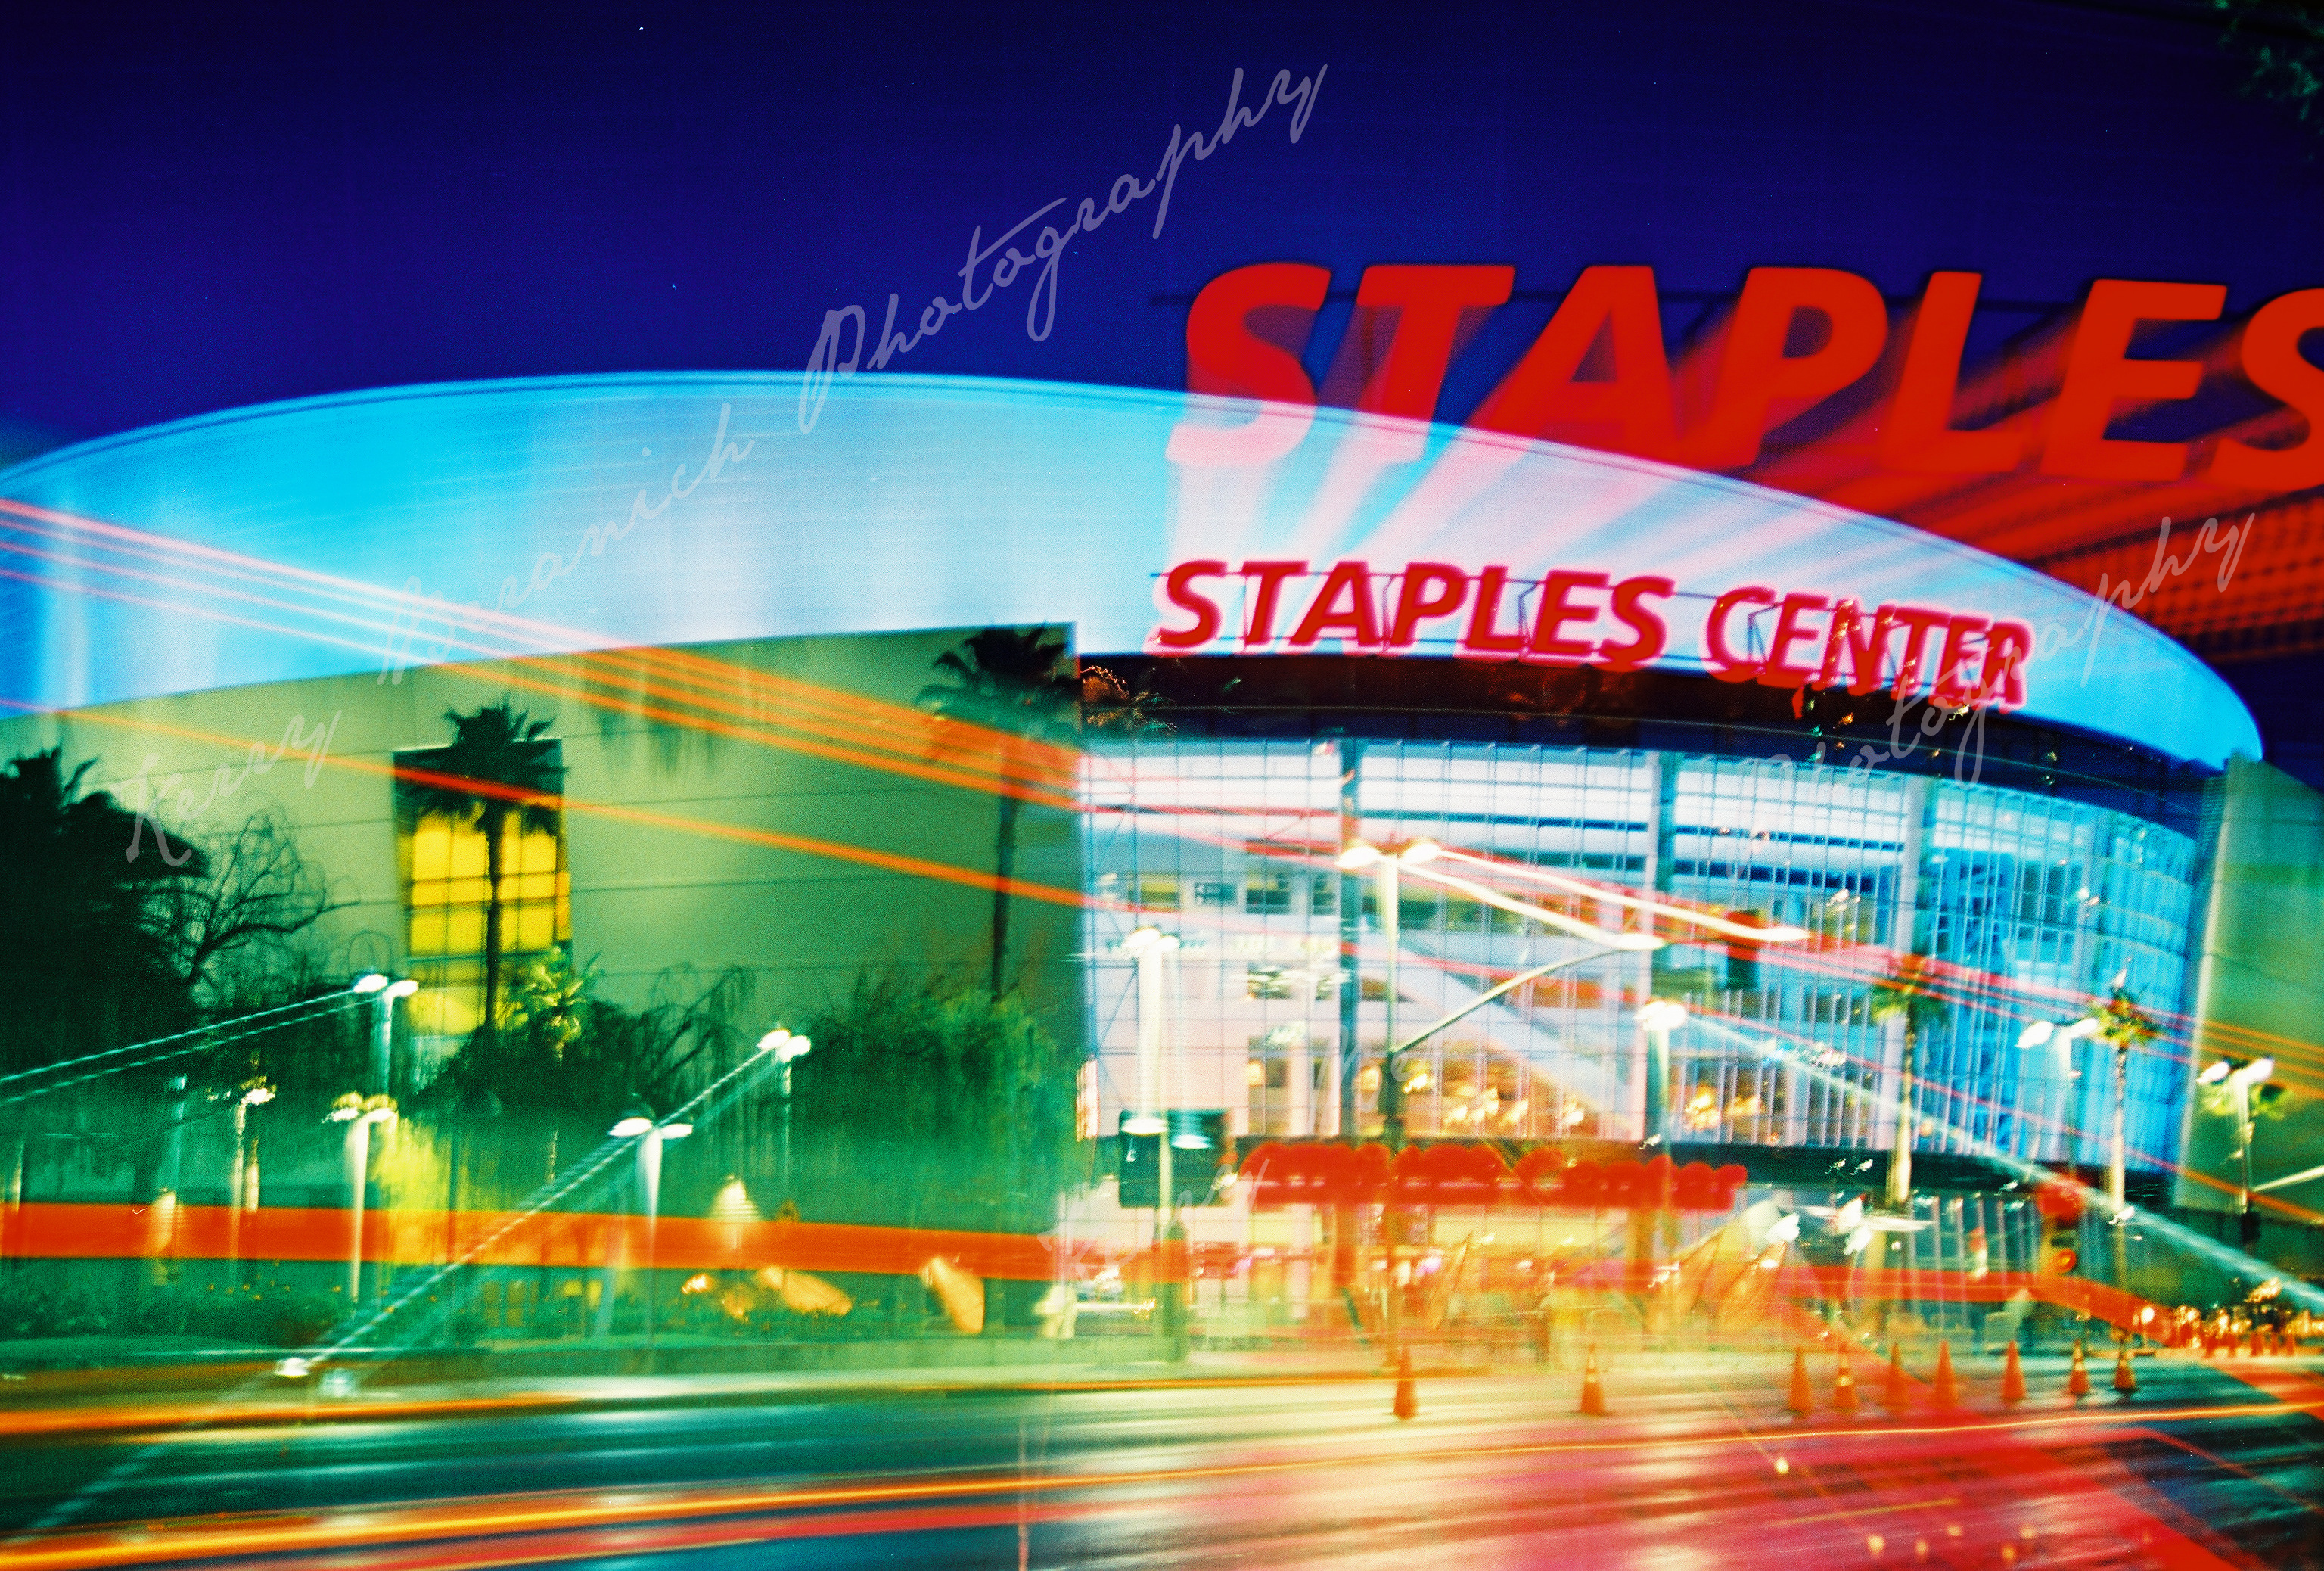 Staples watermark